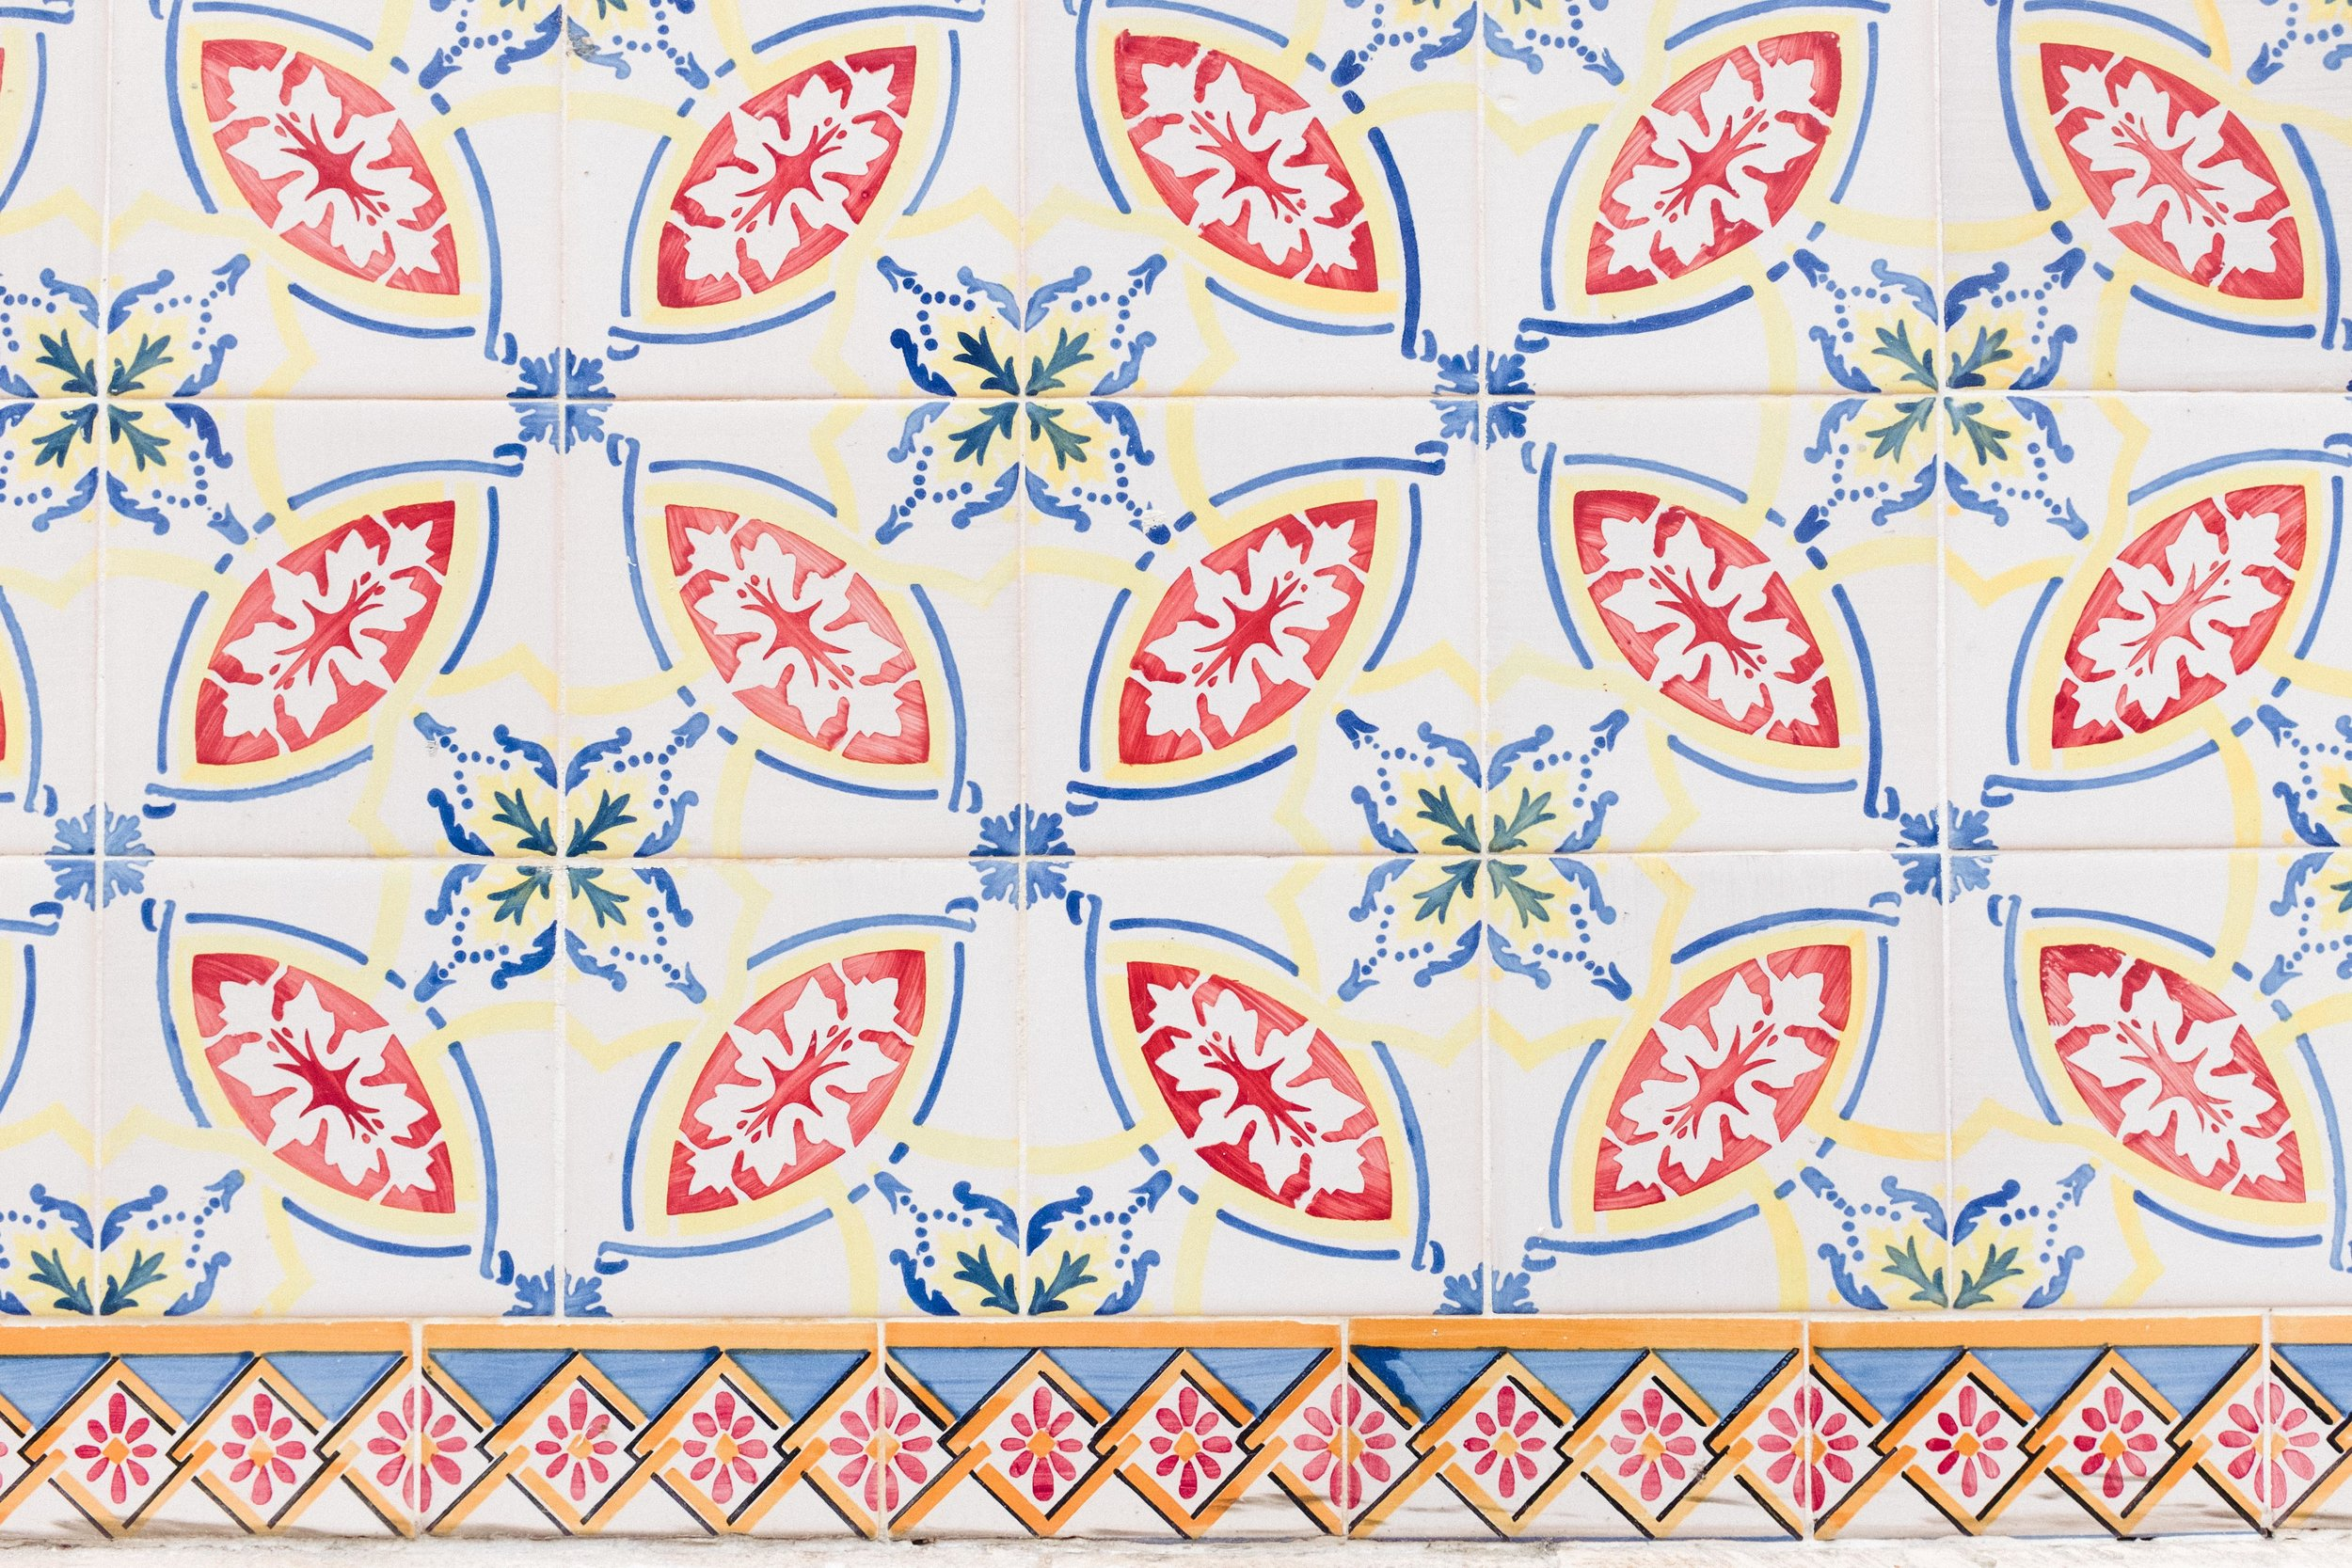 lisbon-portugal-azulejos-tiles-red-green-blue